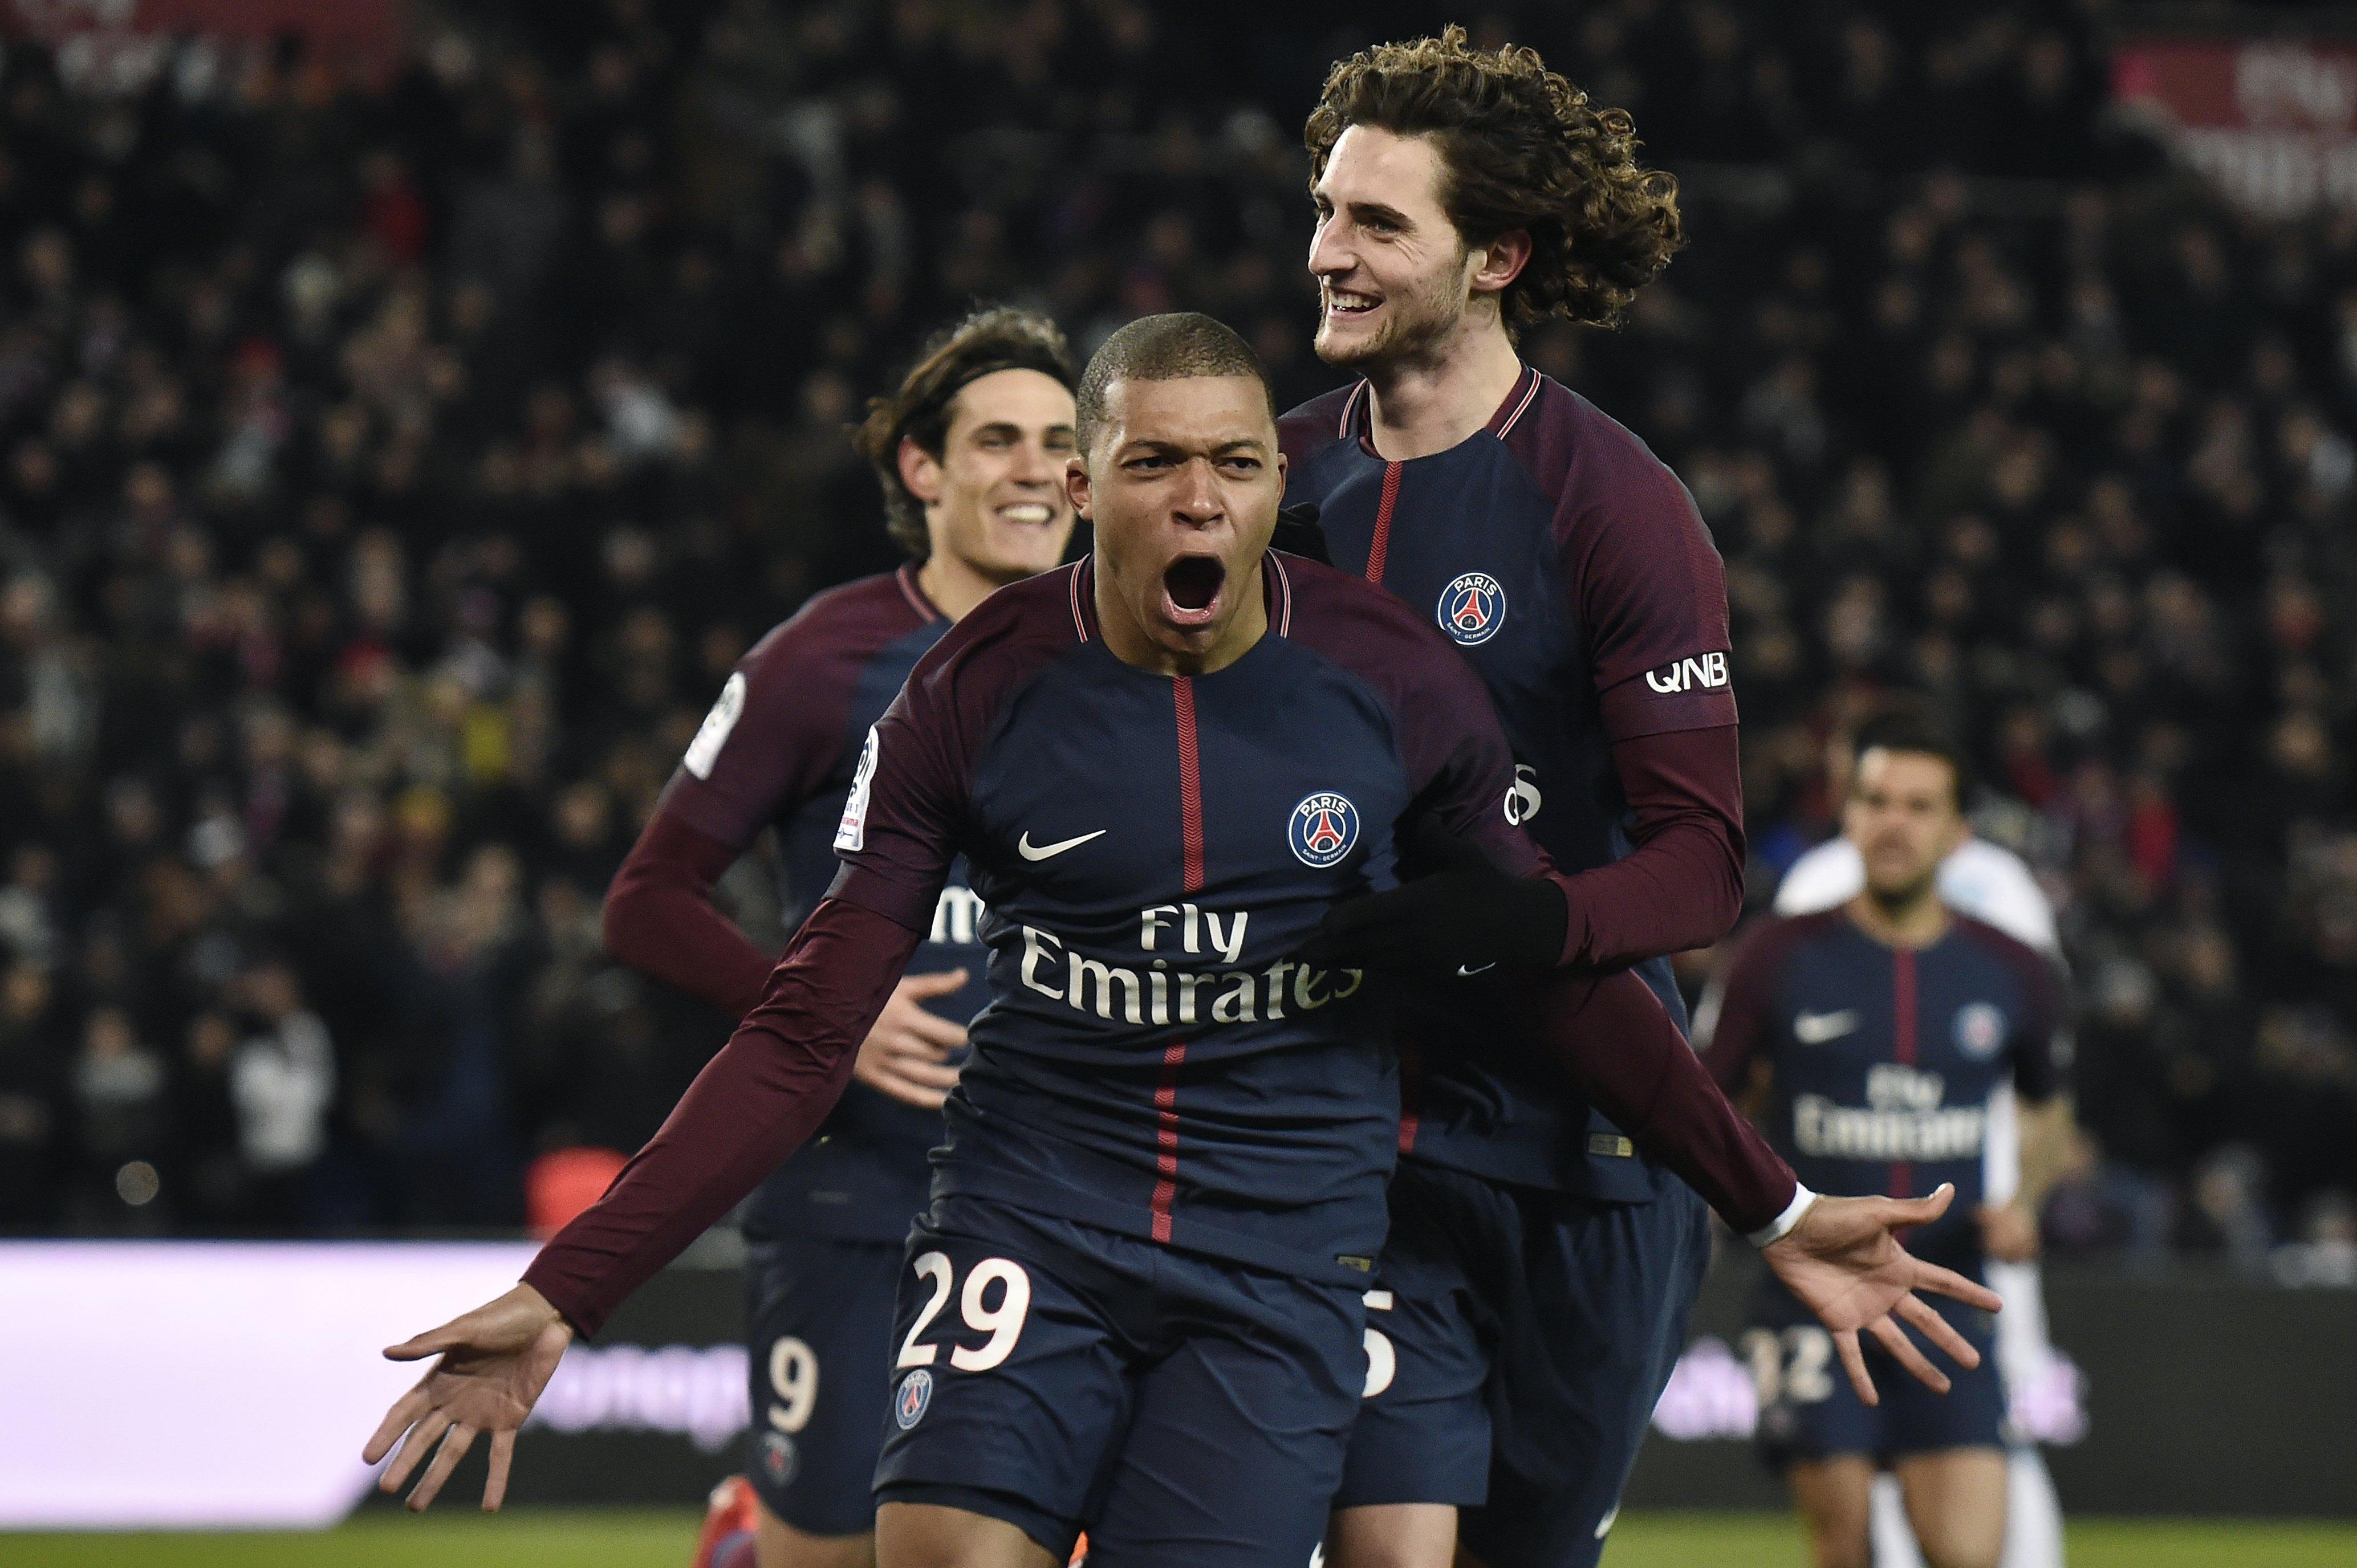 It's been a special season for PSG so far